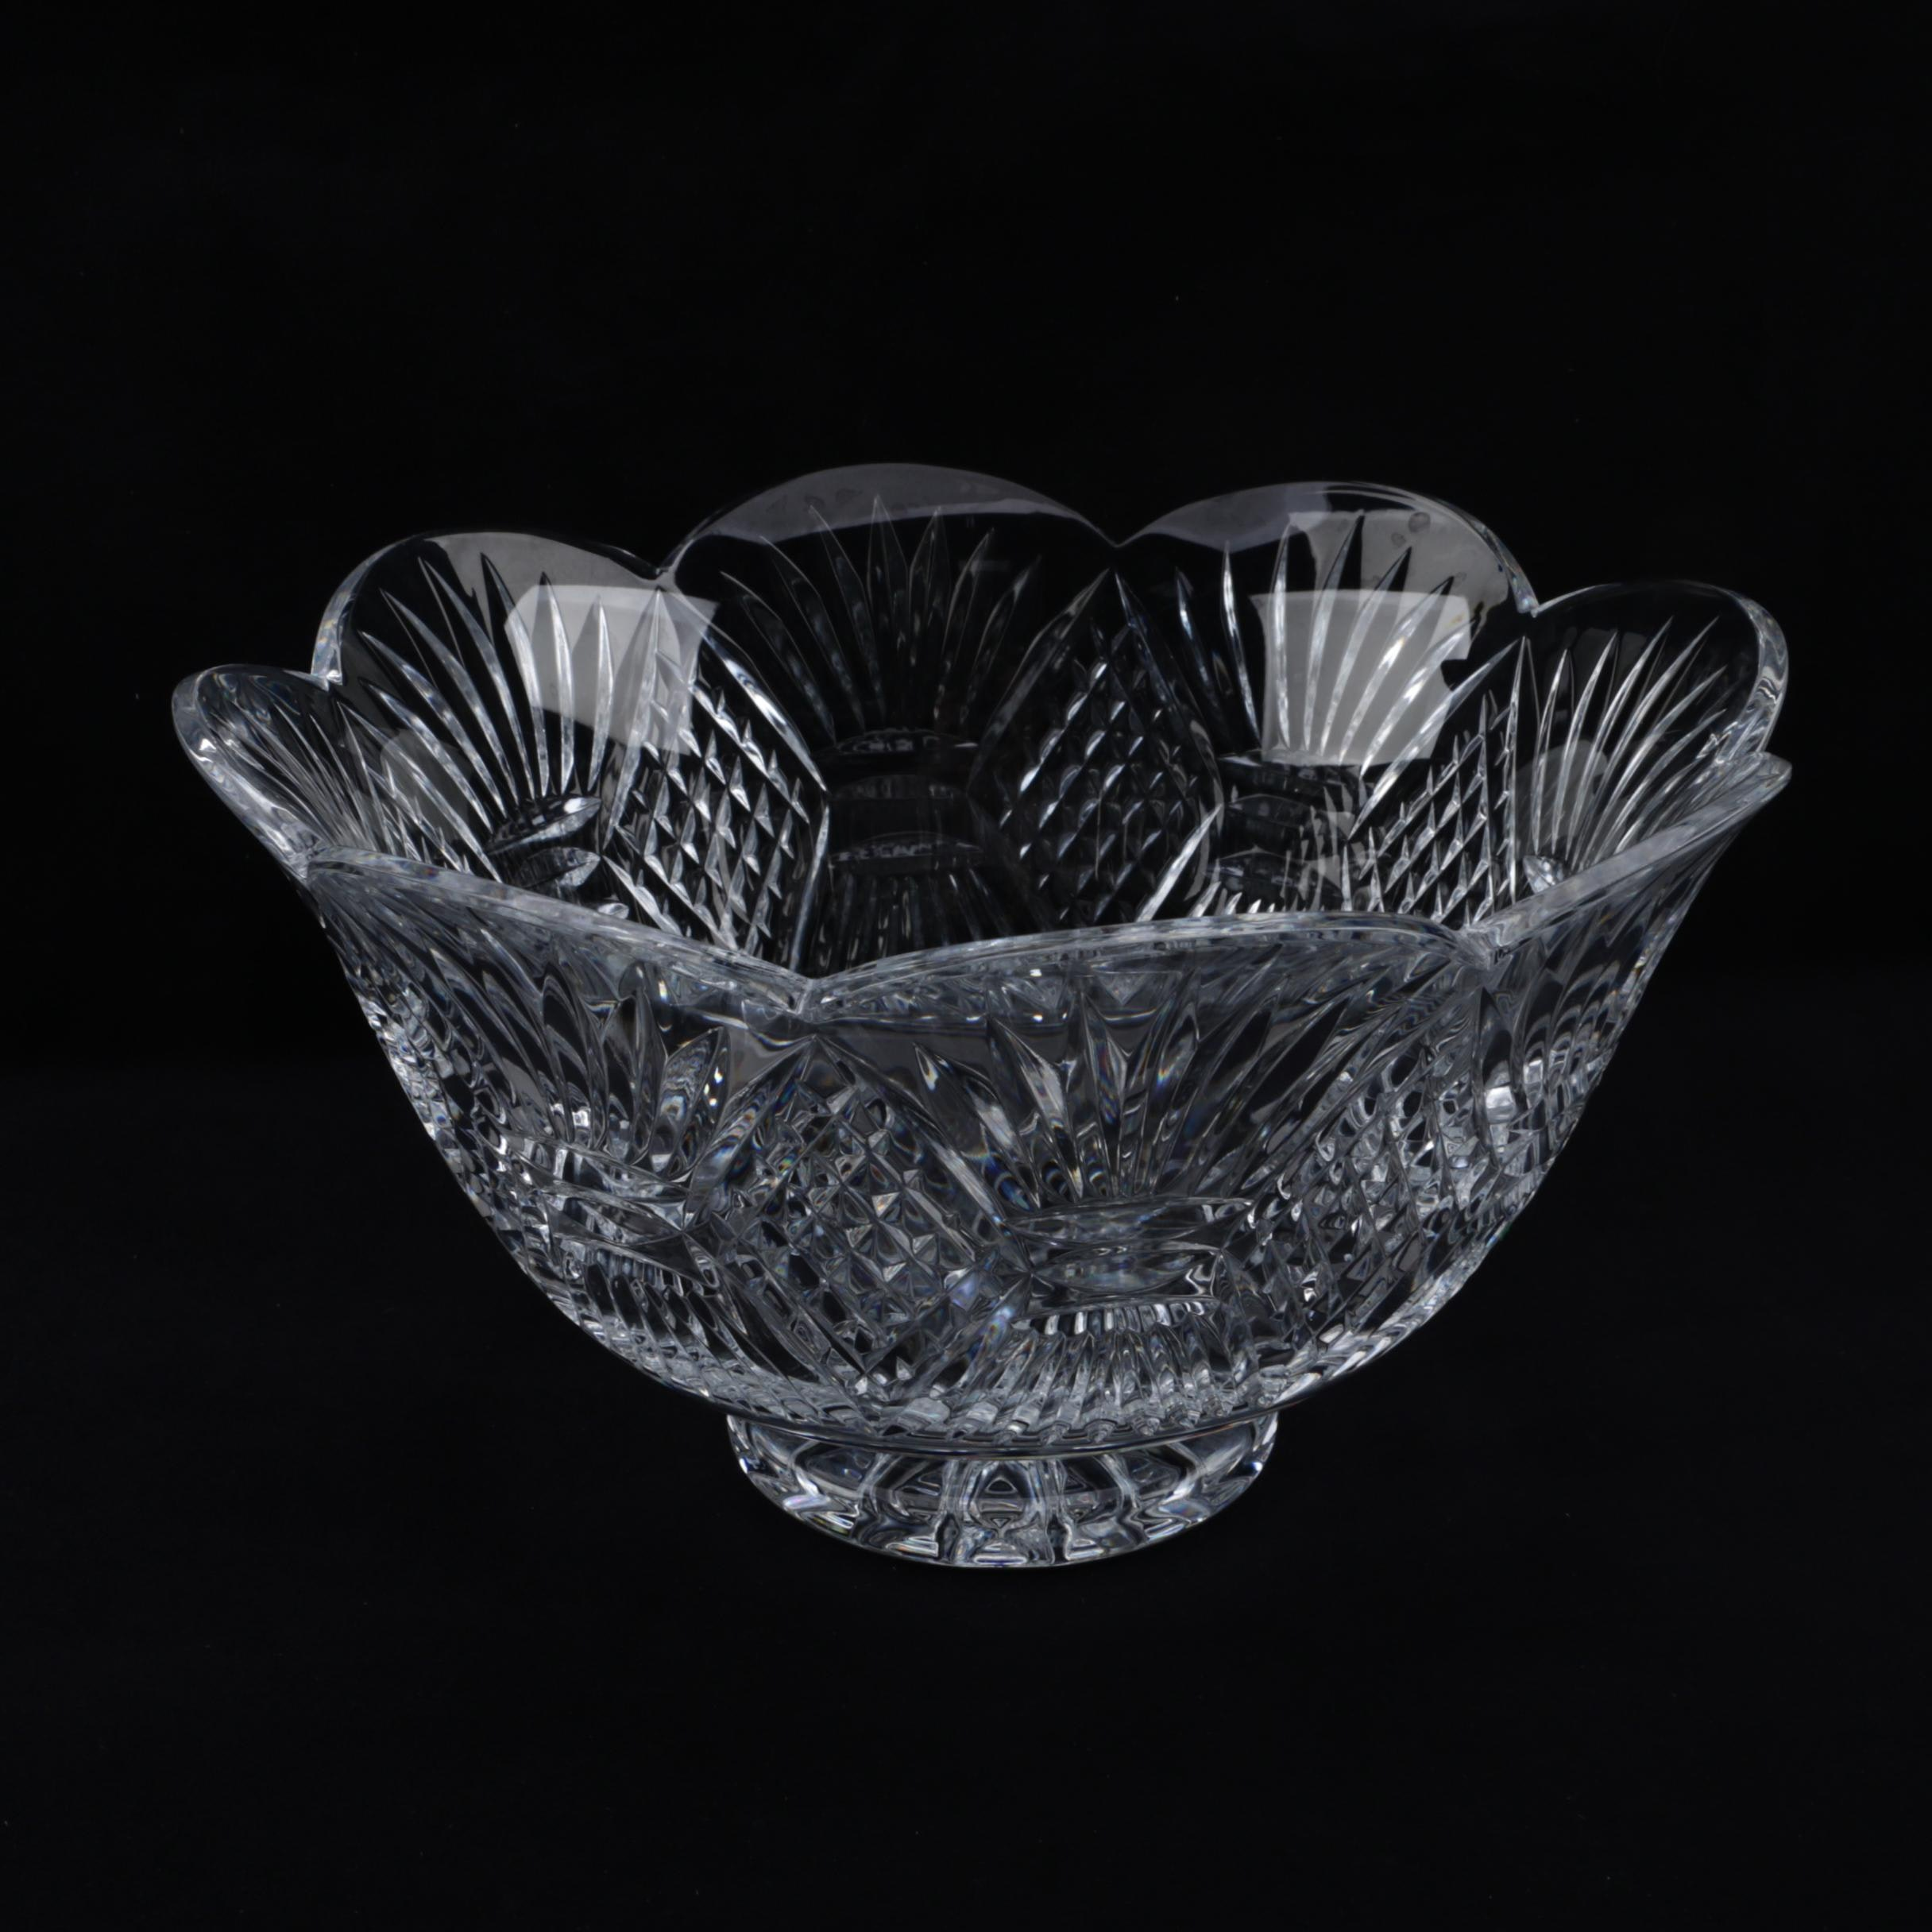 """Waterford Crystal """"Aran Isles"""" Bowl From the Romance of Ireland Collection"""